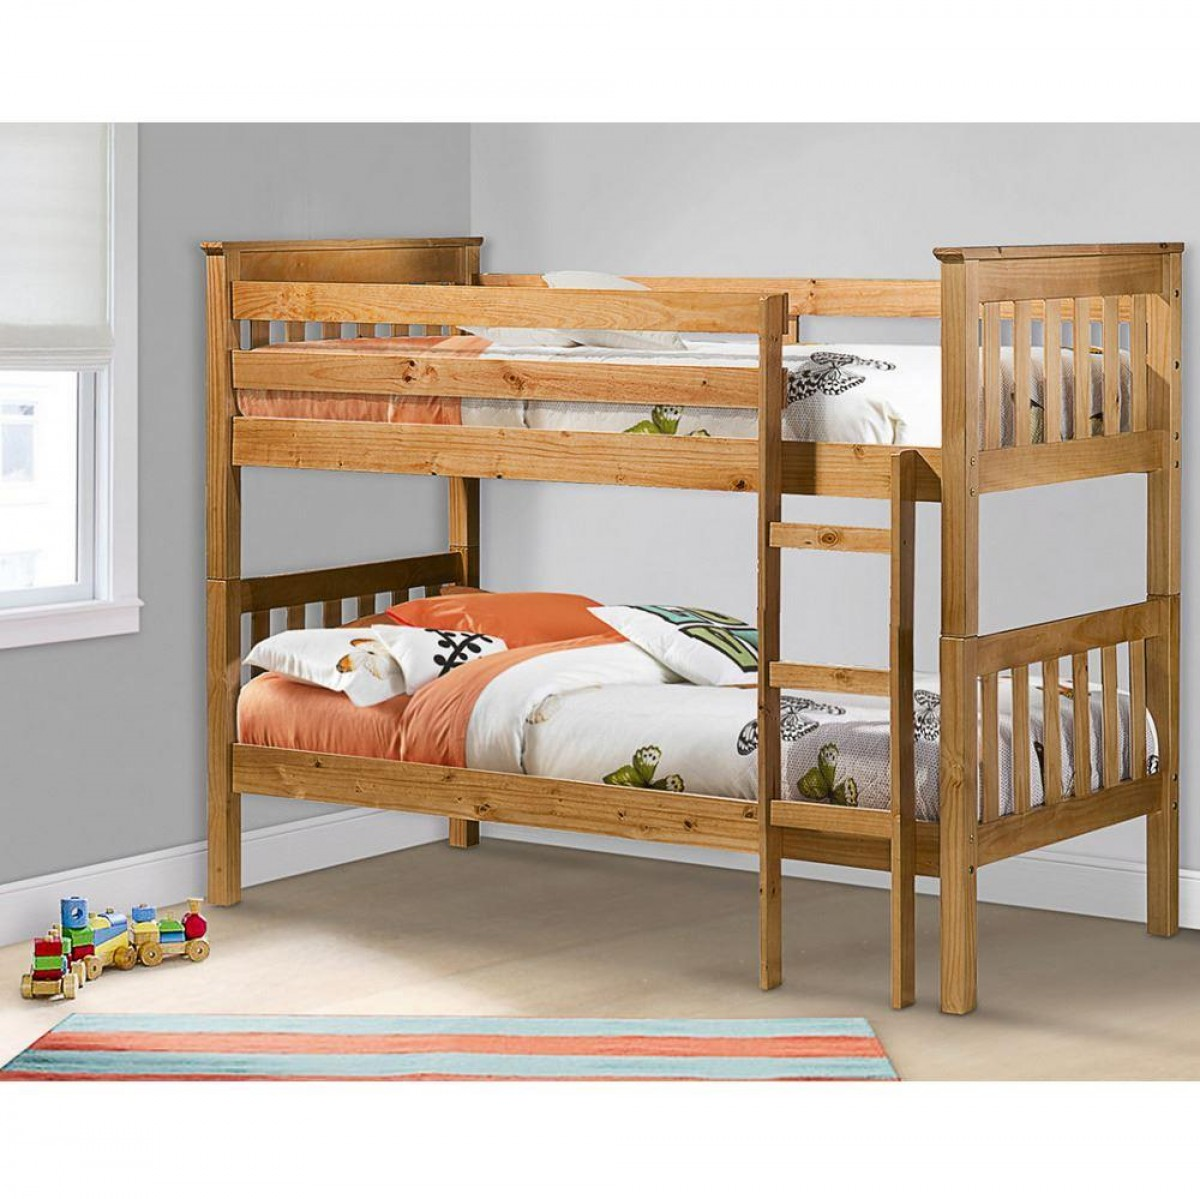 Portland Pine Wooden Bunk Bed